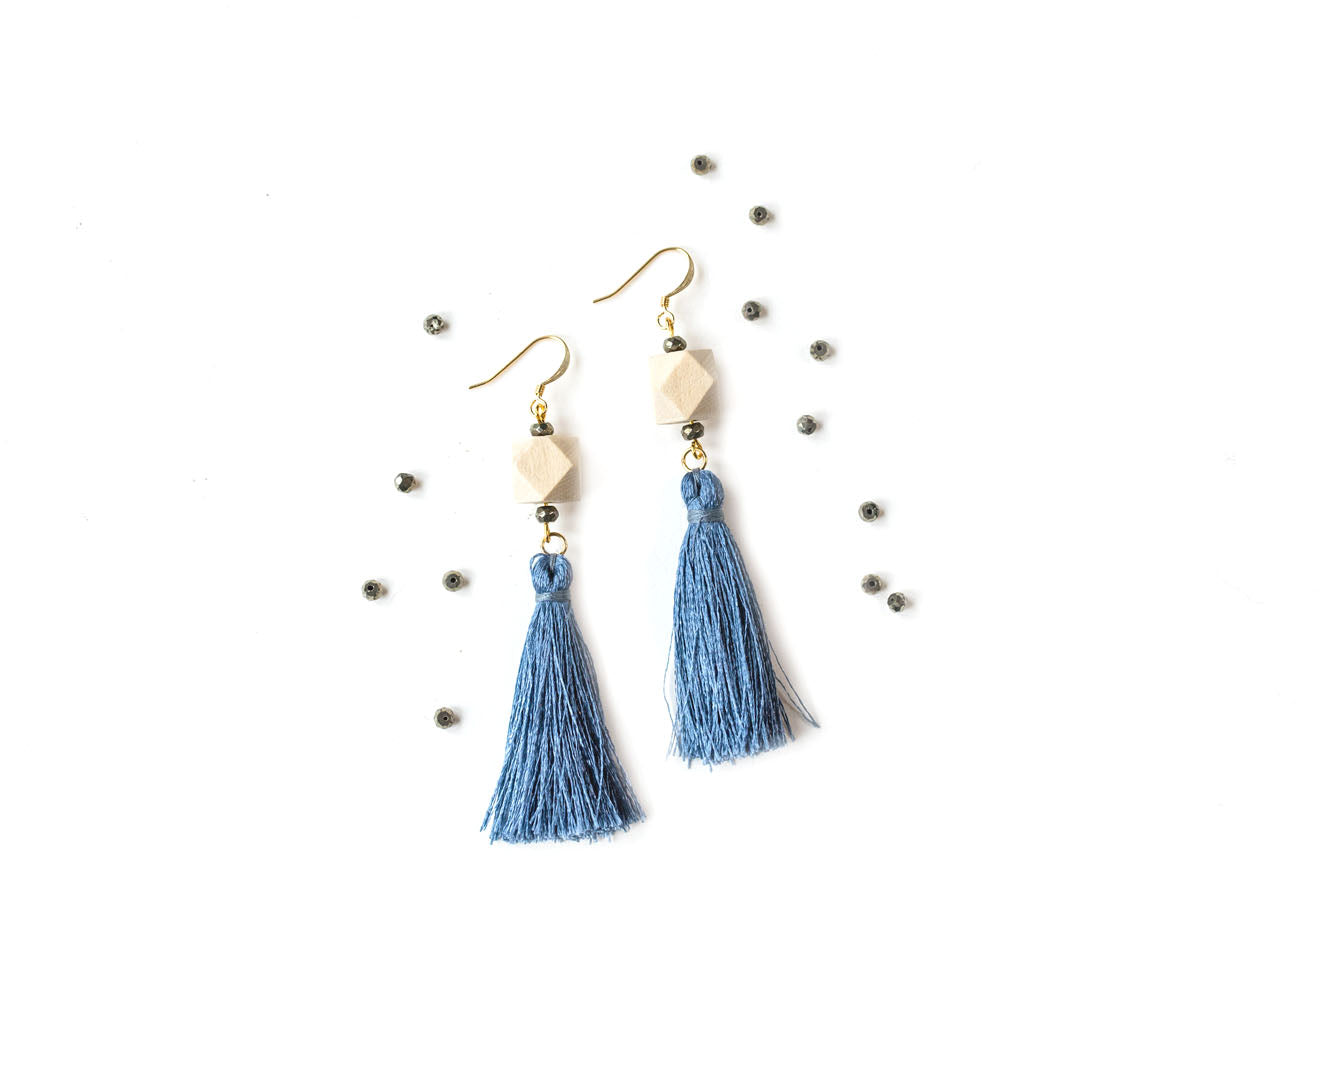 Pyrite Tassel Earrings with Nickel-Free Surgical Steel Gold - Tittup Unique Aromatherapy & Jewellery